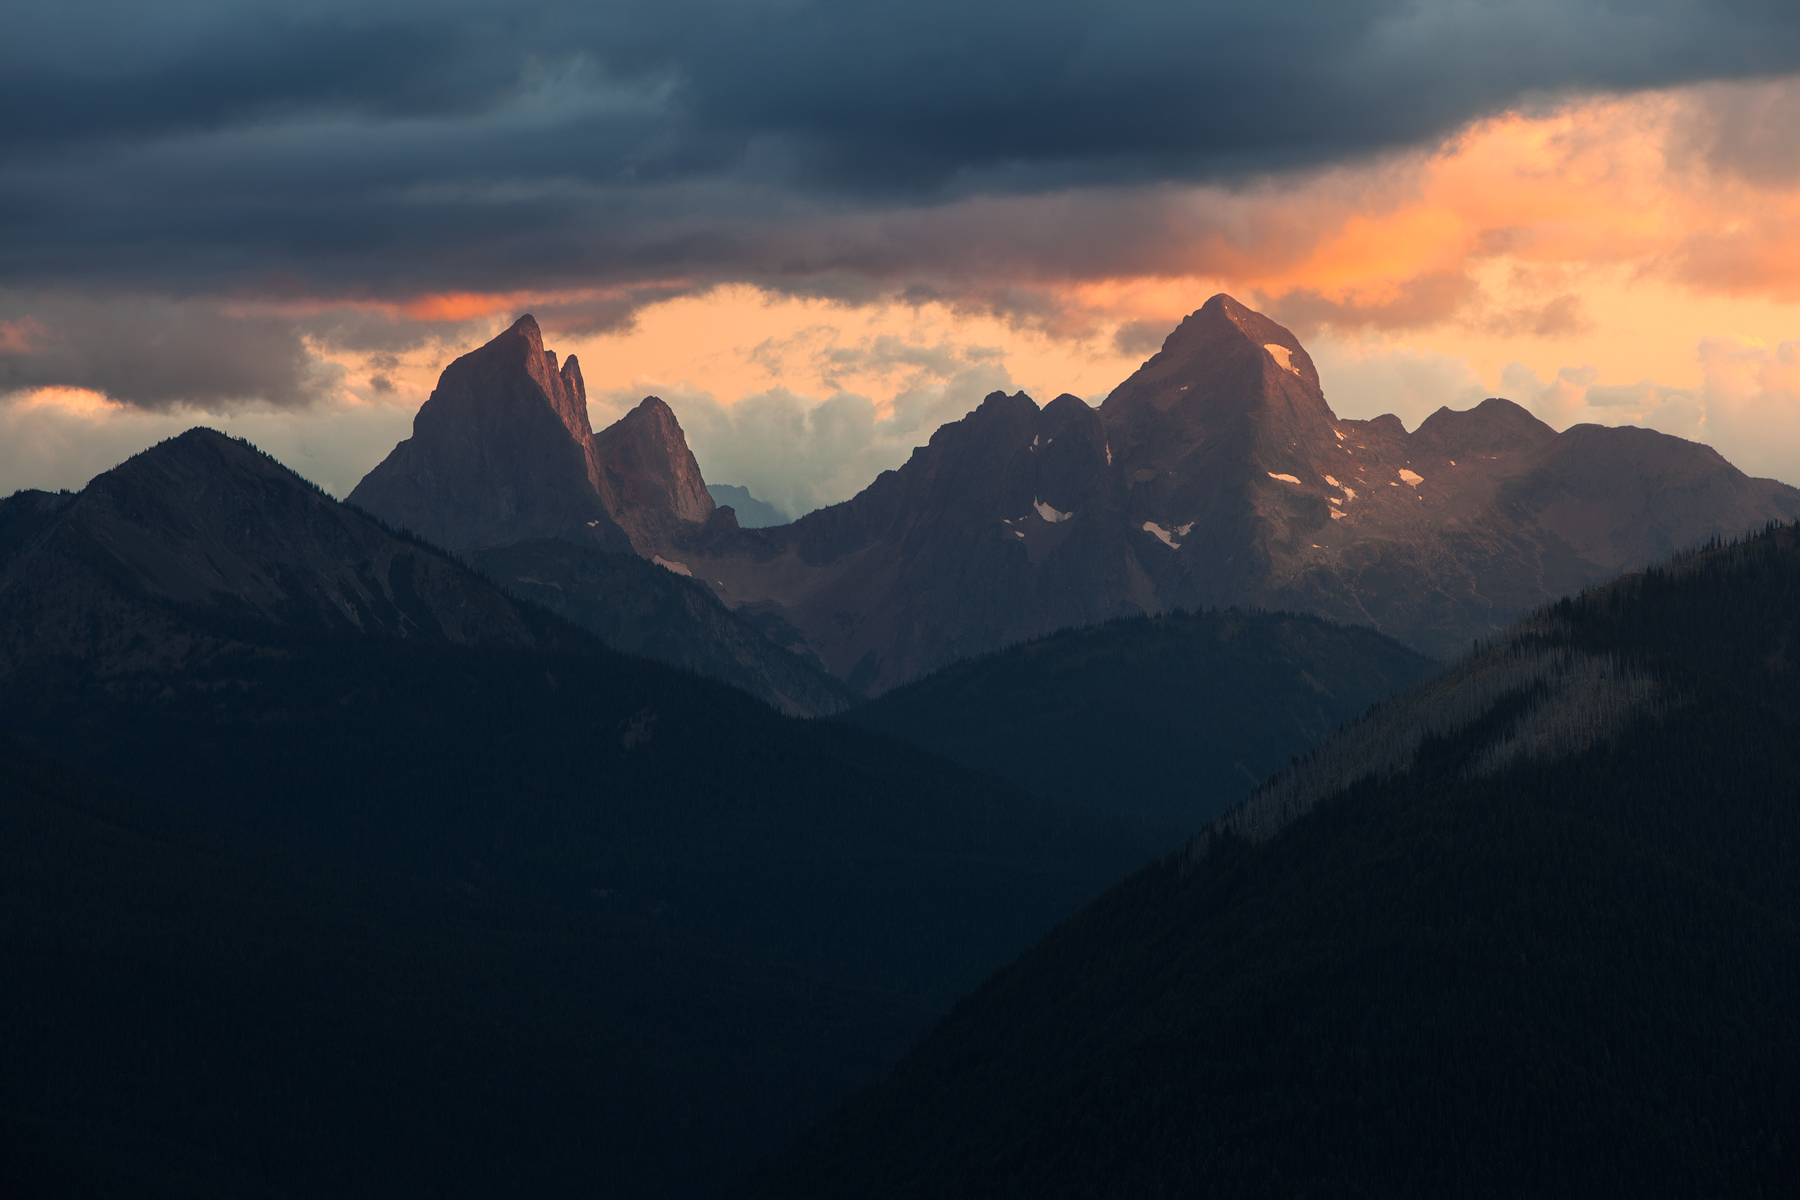 Sunset over Mount Hozomeen from Manning Provincial Park, B.C, Canada.  Image ©Connor Stefanison